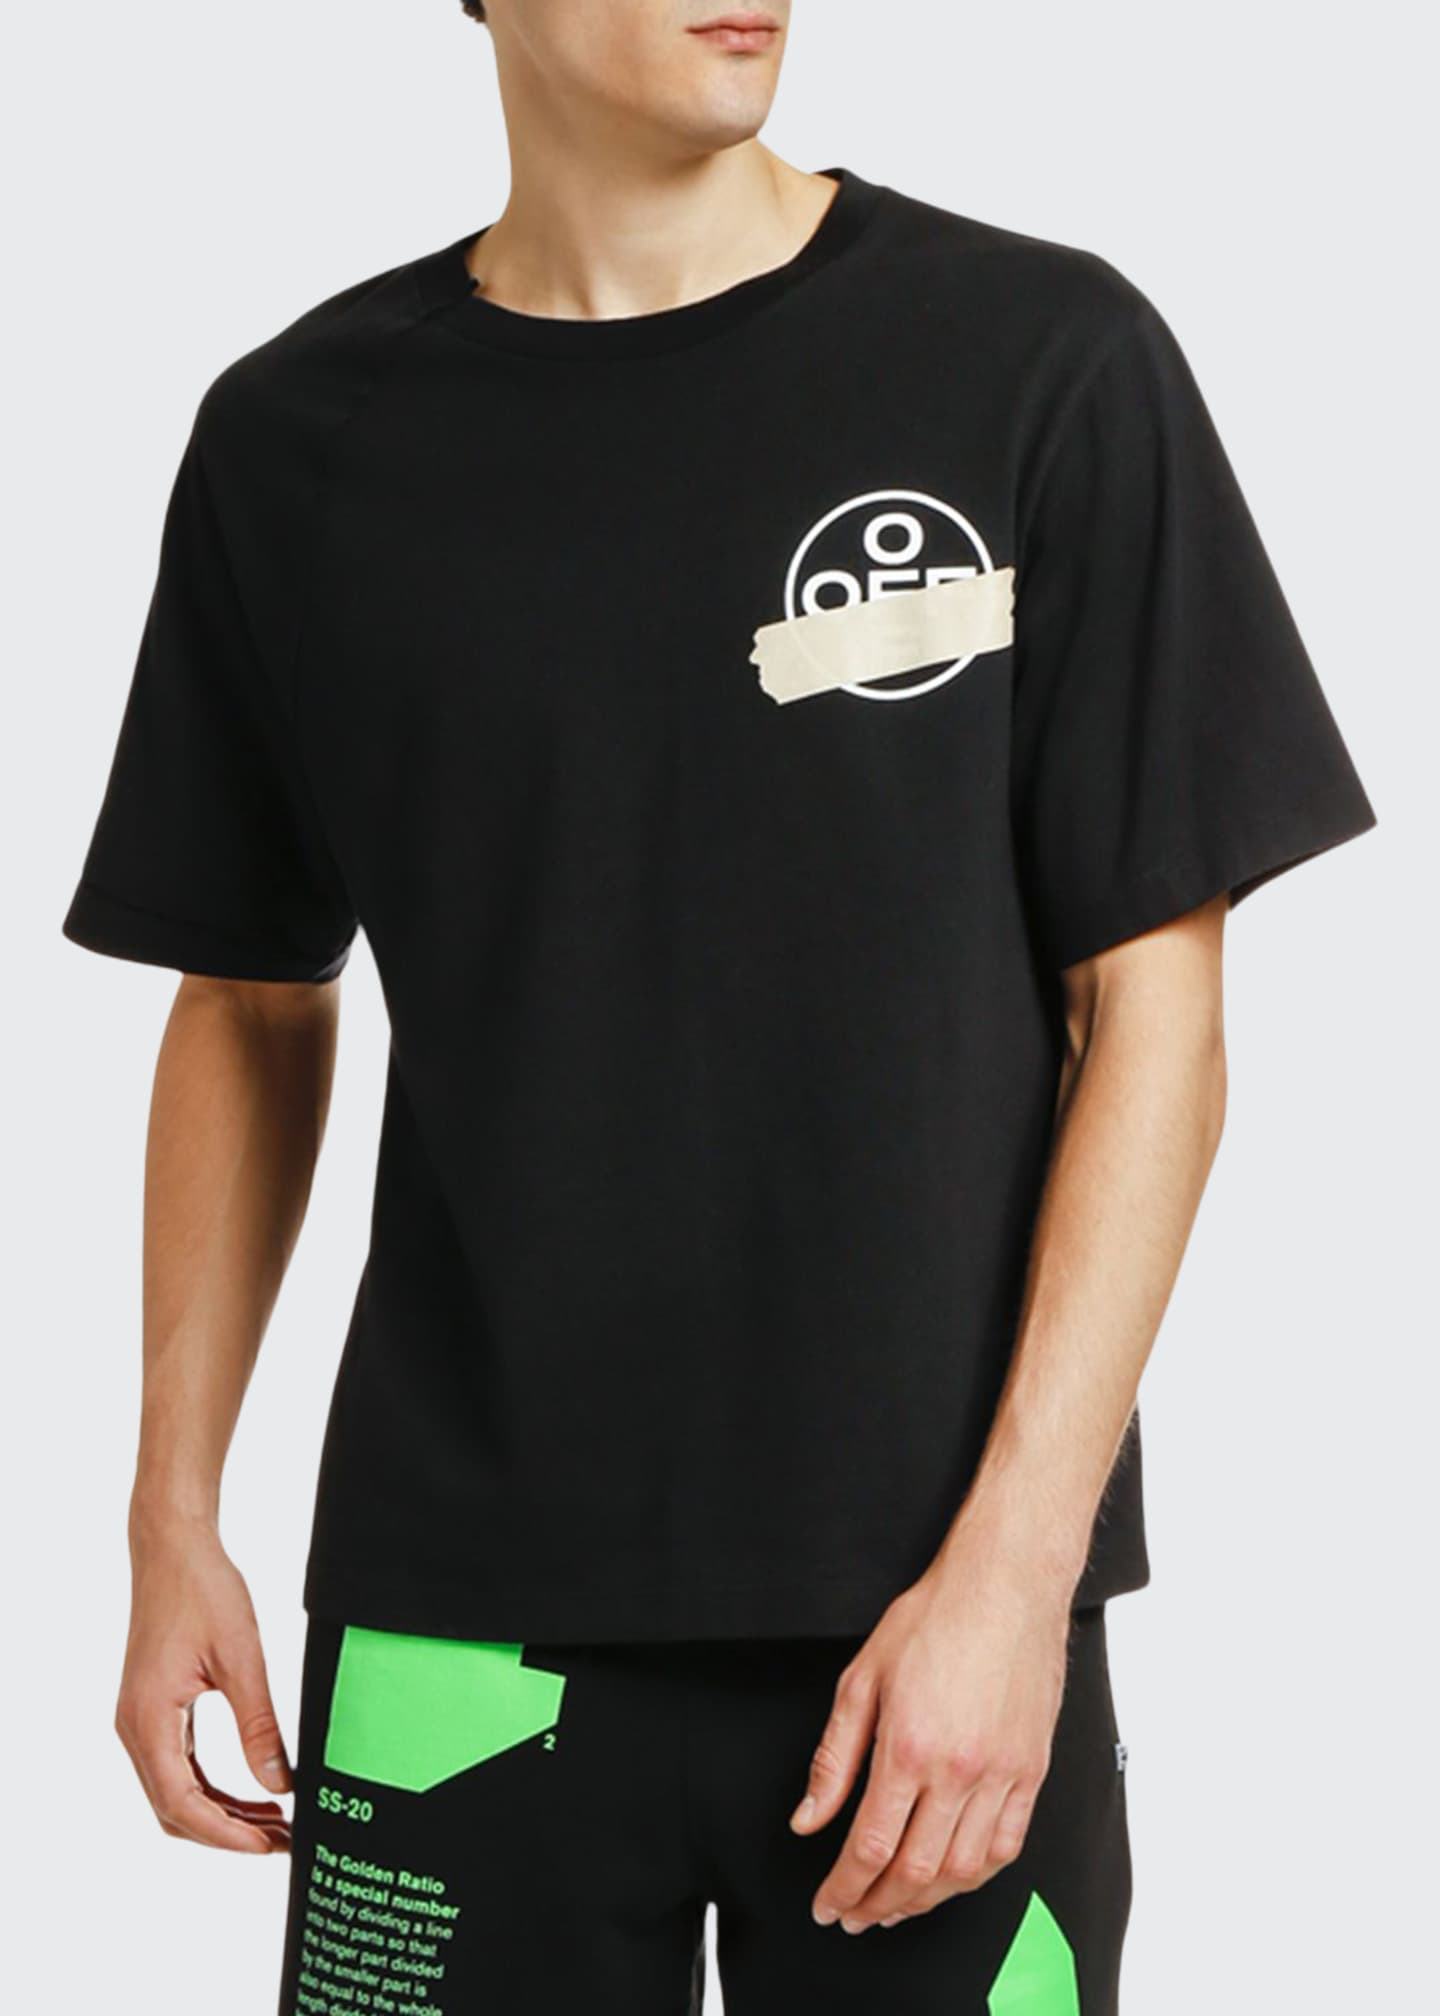 Off-White Men's Tape Arrows Reconstructed T-Shirt